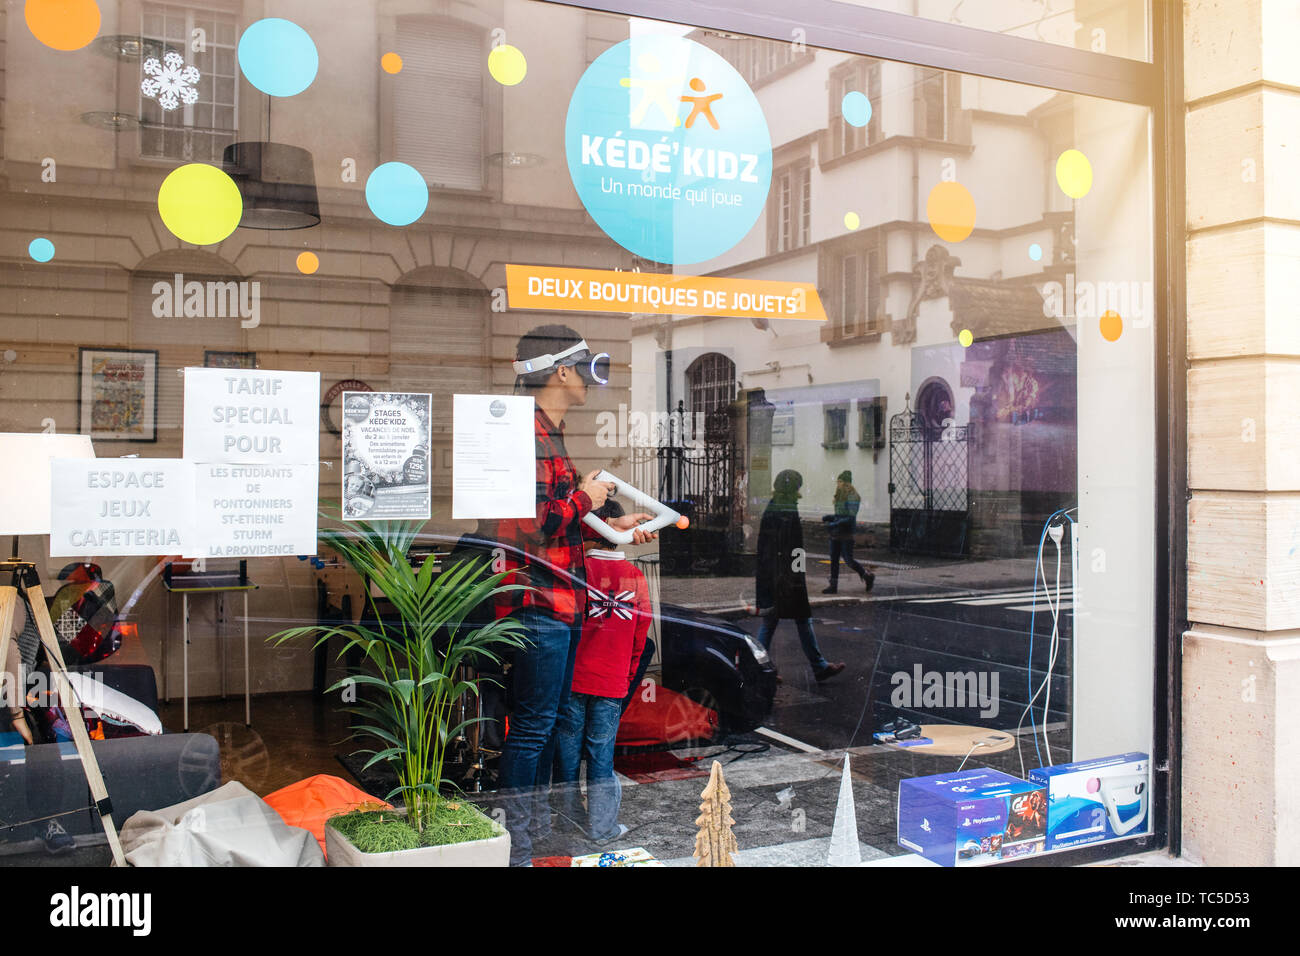 Strasbourg, France - Dec 27, 2017: Man playing inside free game zone with VR set and Precise Aiming for PlayStationVR Aim Controller - Stock Image